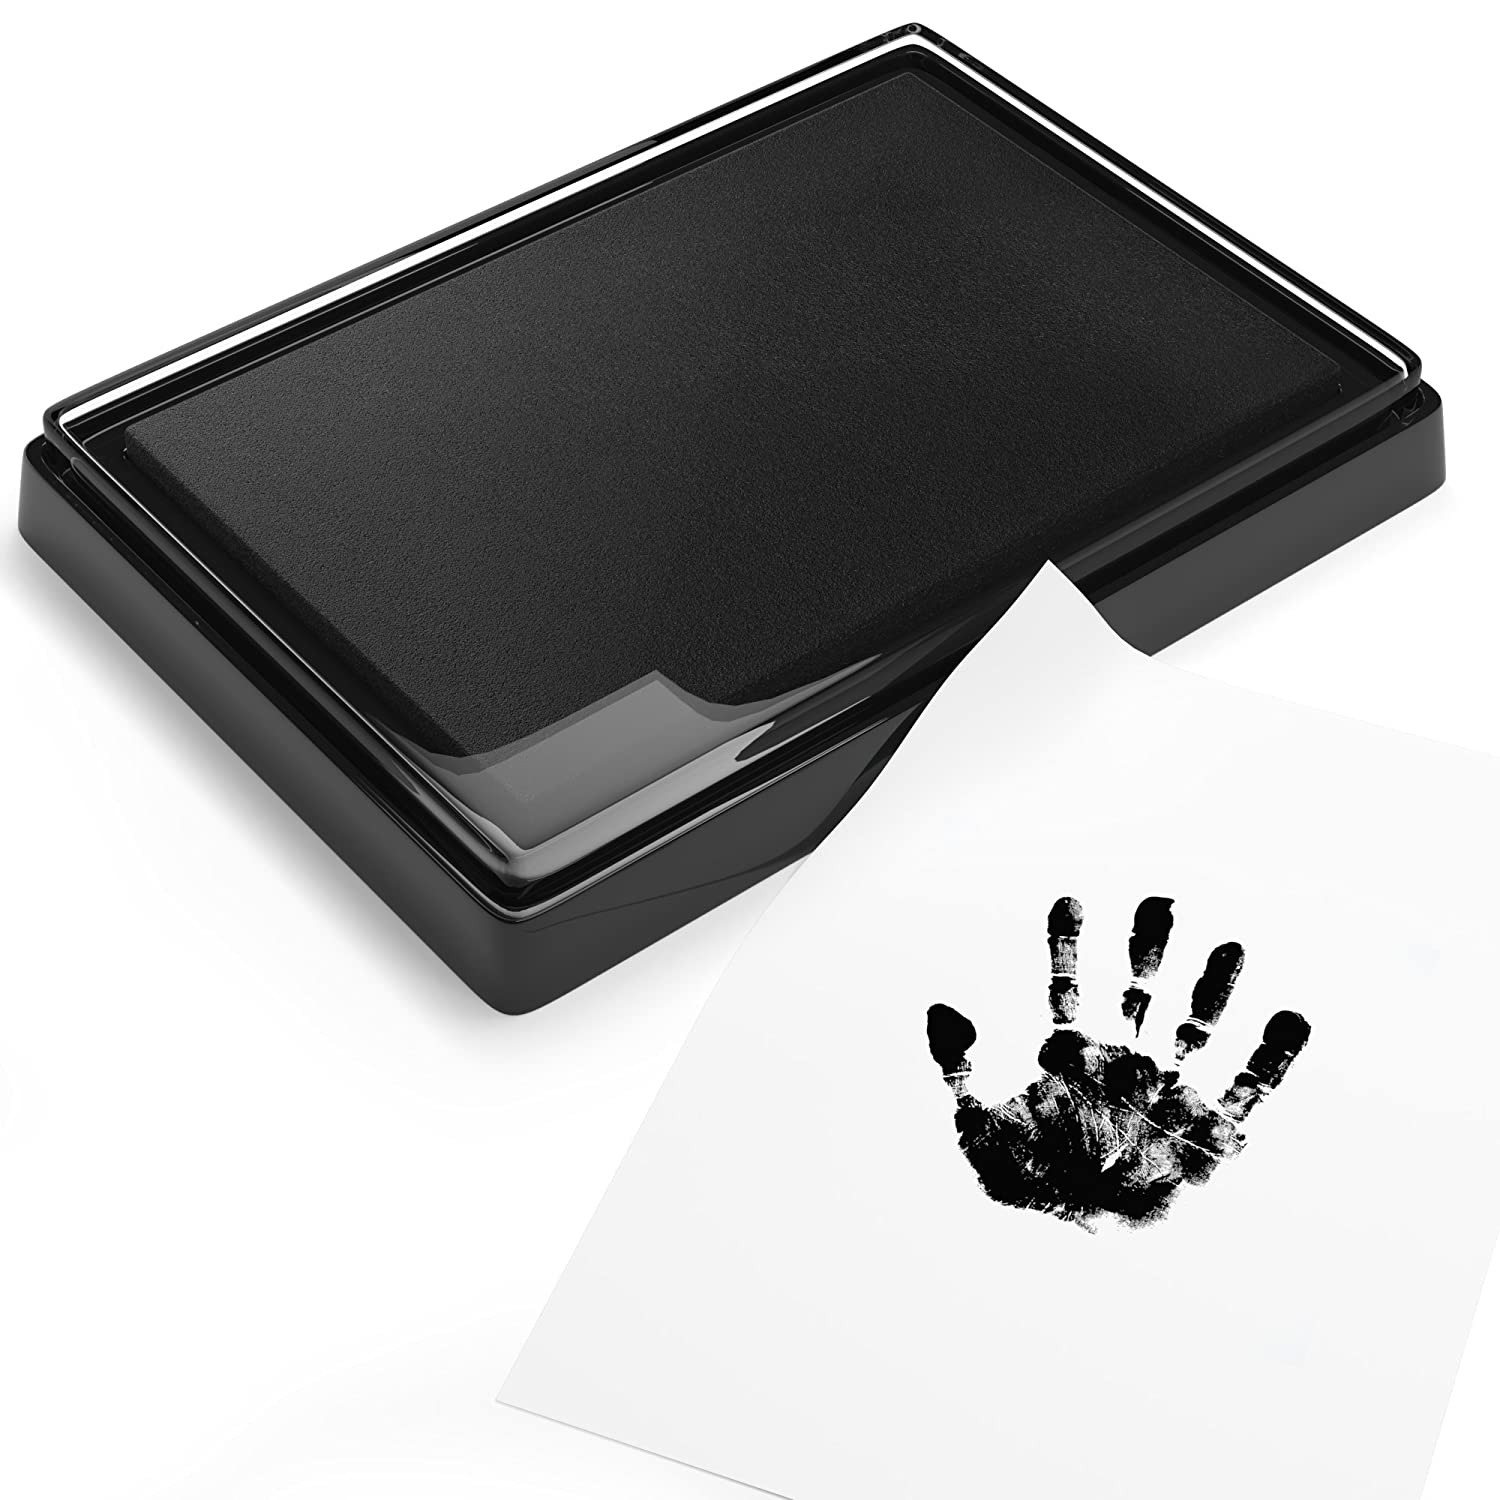 Baby Safe Print Ink Pad, Non-Toxic Baby Footprint and Handprint Kit, Keepsake Gifts to Cherish Baby's Memories, Multiple Uses Cameron Frank Products